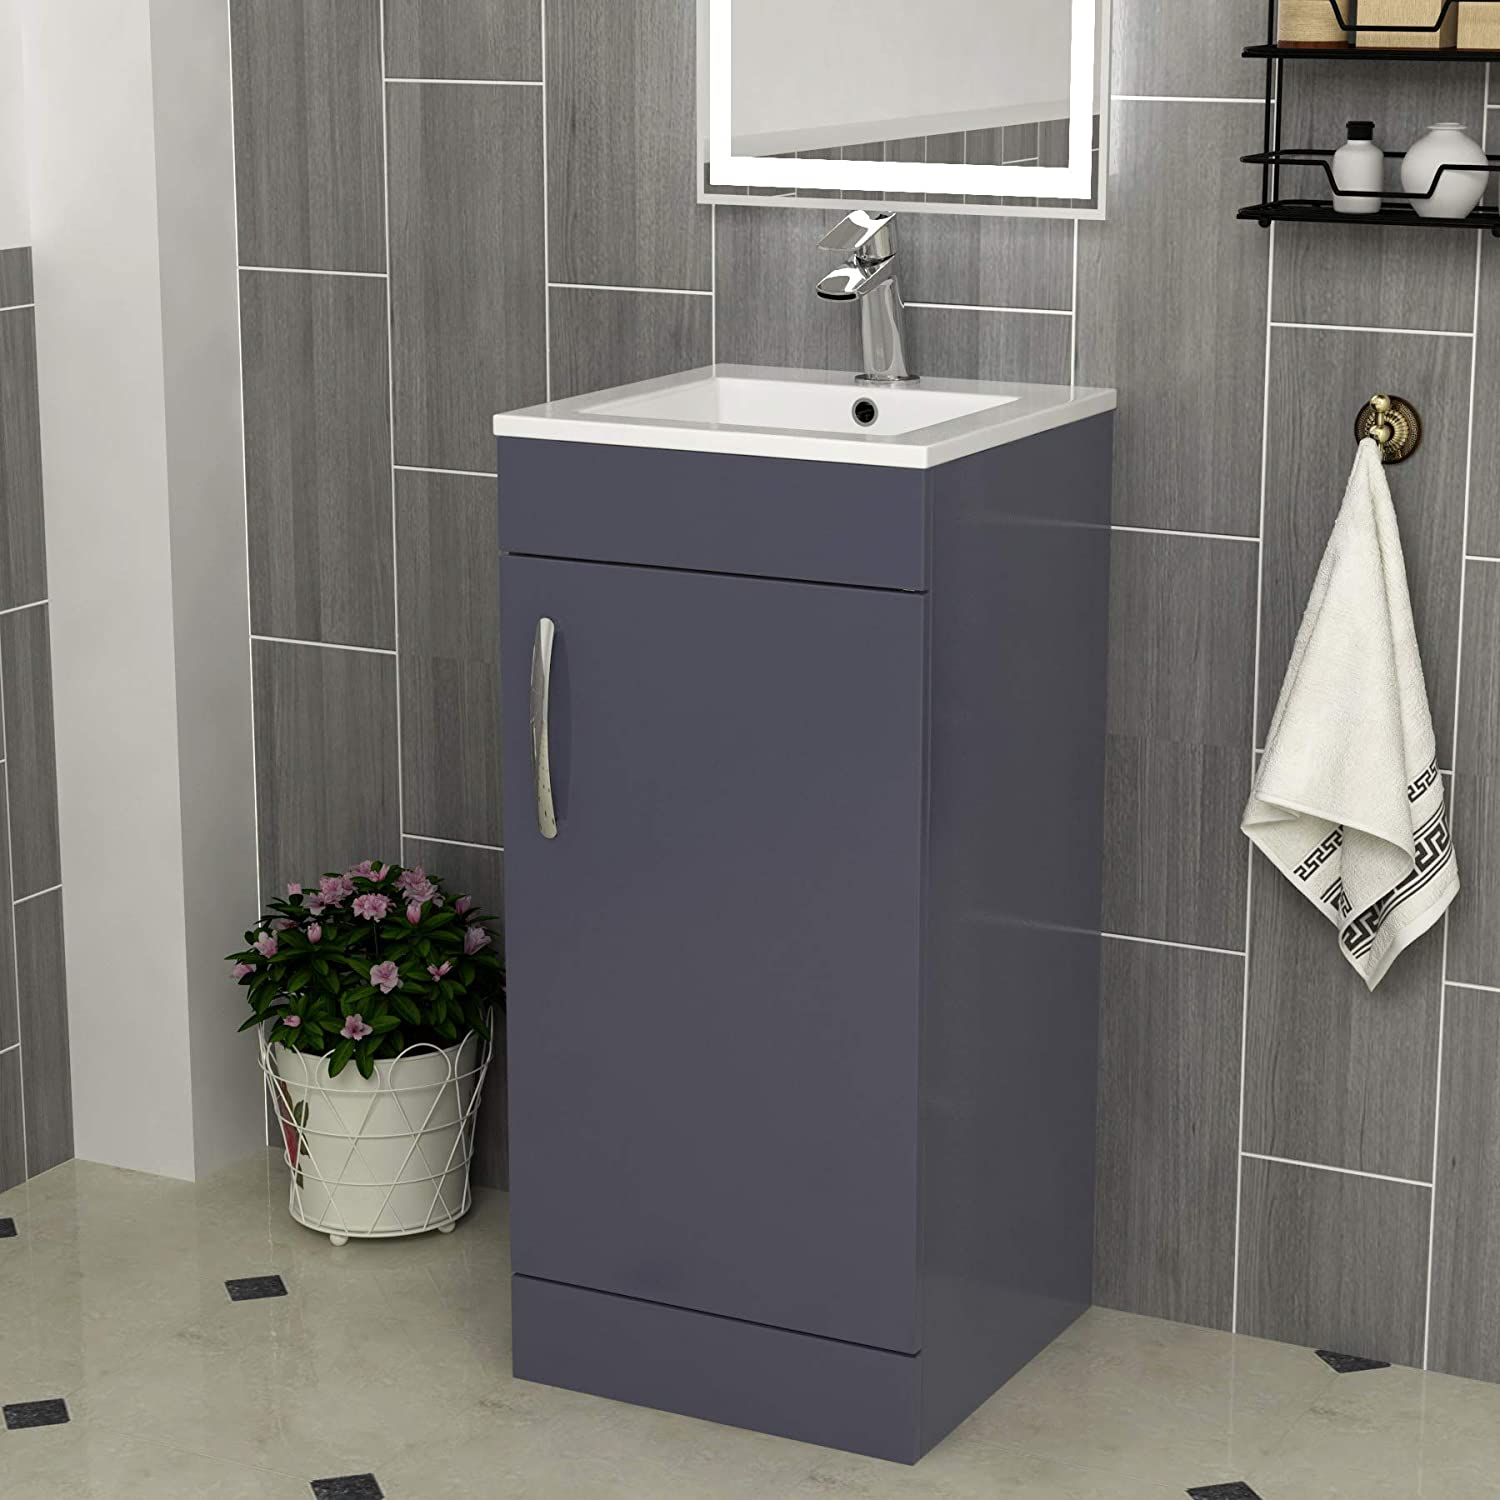 Vault Vanity Unit With Basin Compact Wall Hung Floor Standing 400mm Wide